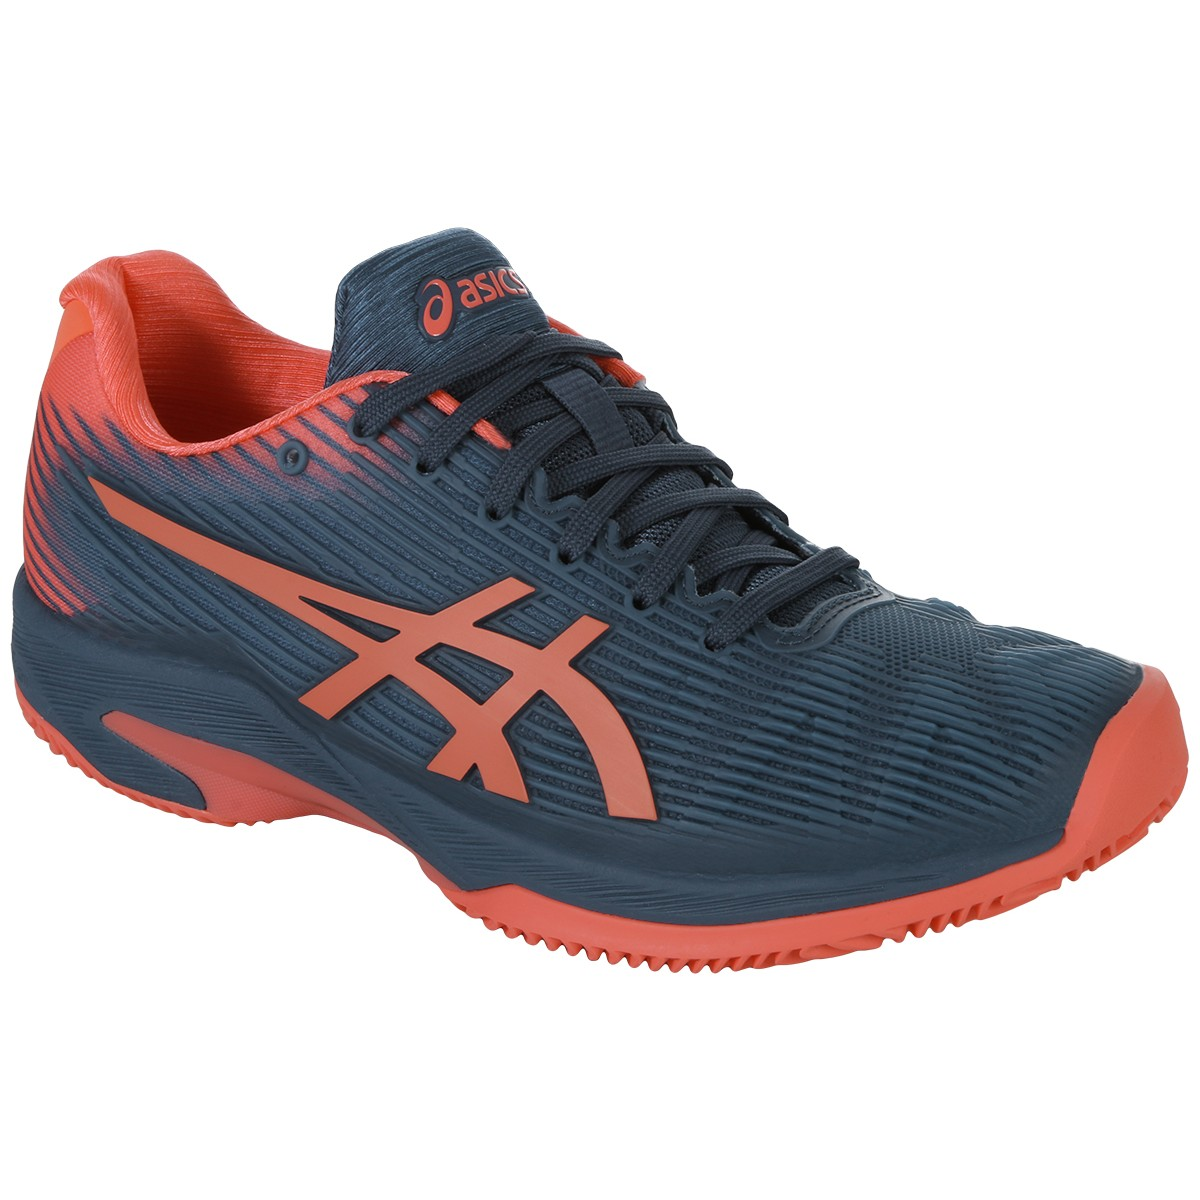 Кроссовки ASICS W SOLUTION SPEED FF CLAY. Фото ¹7